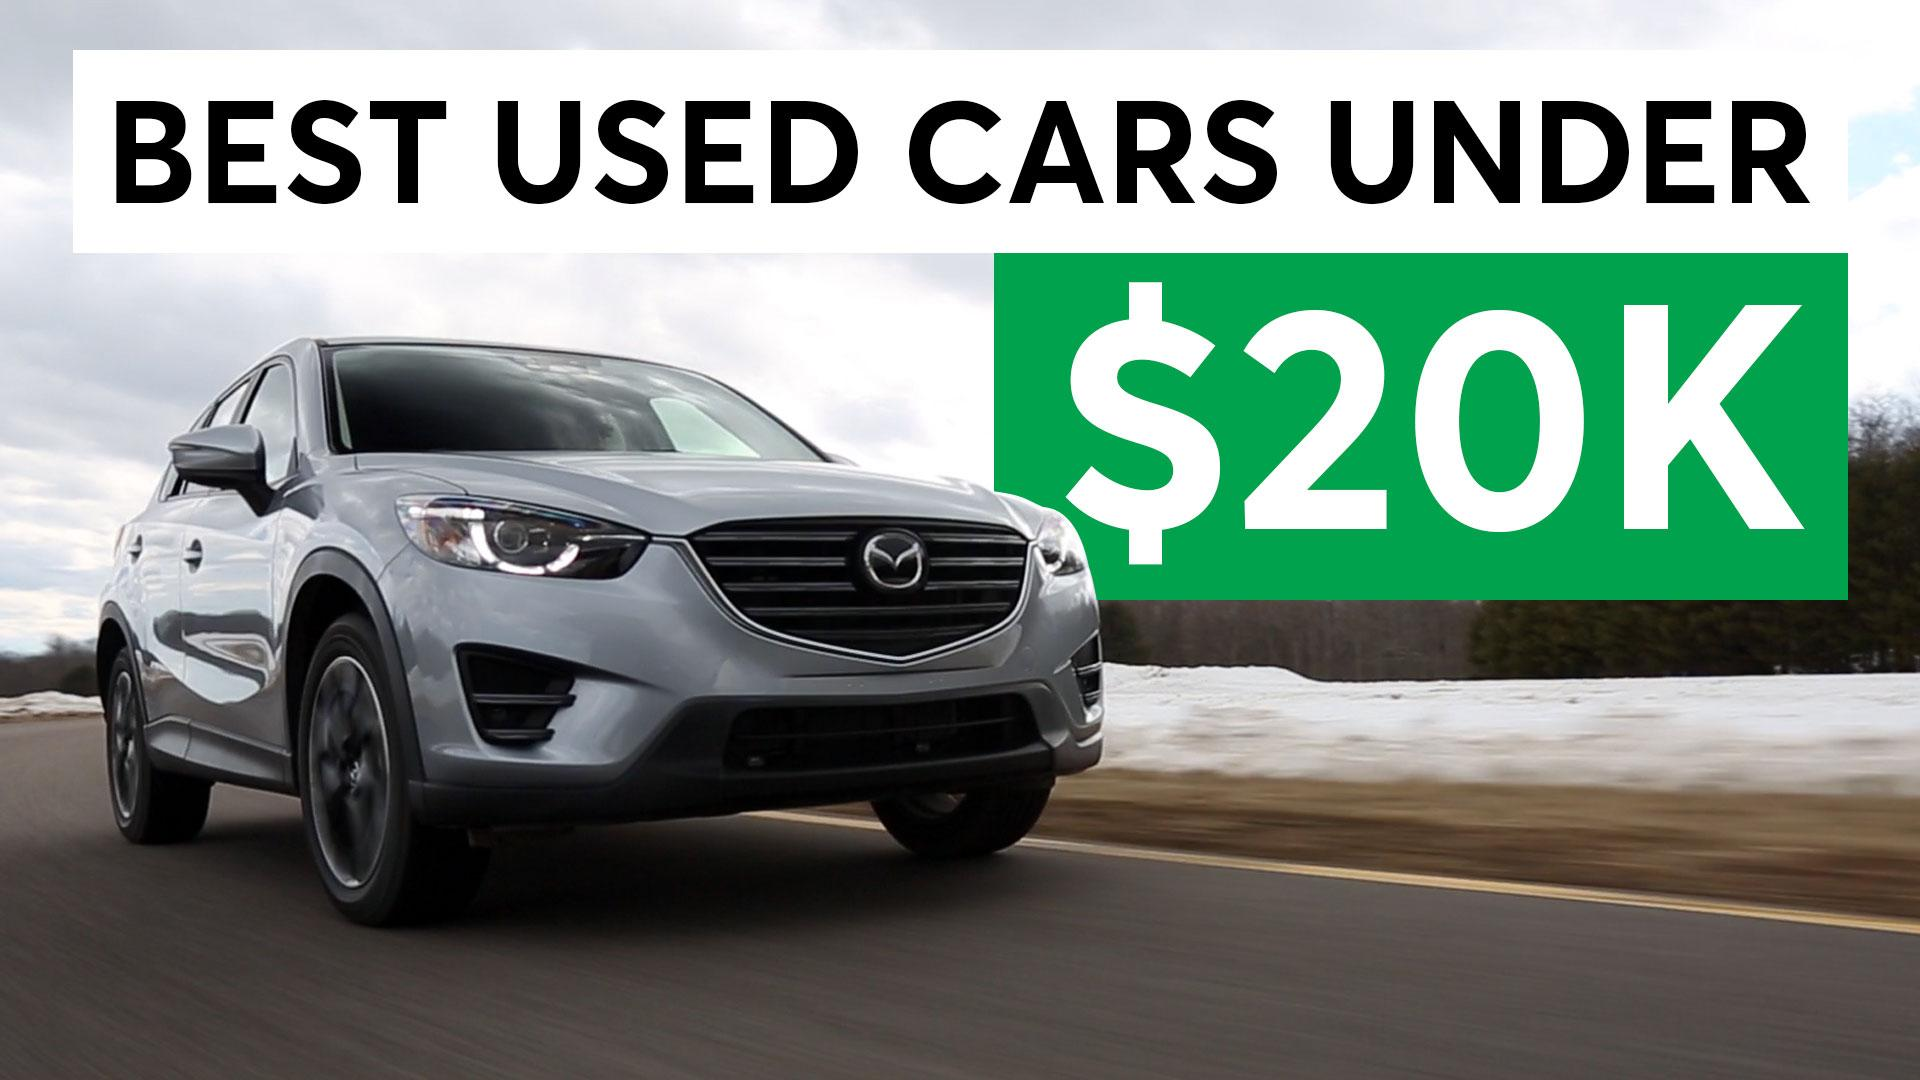 Cars Under 20k >> The Best Used Cars Under 20k